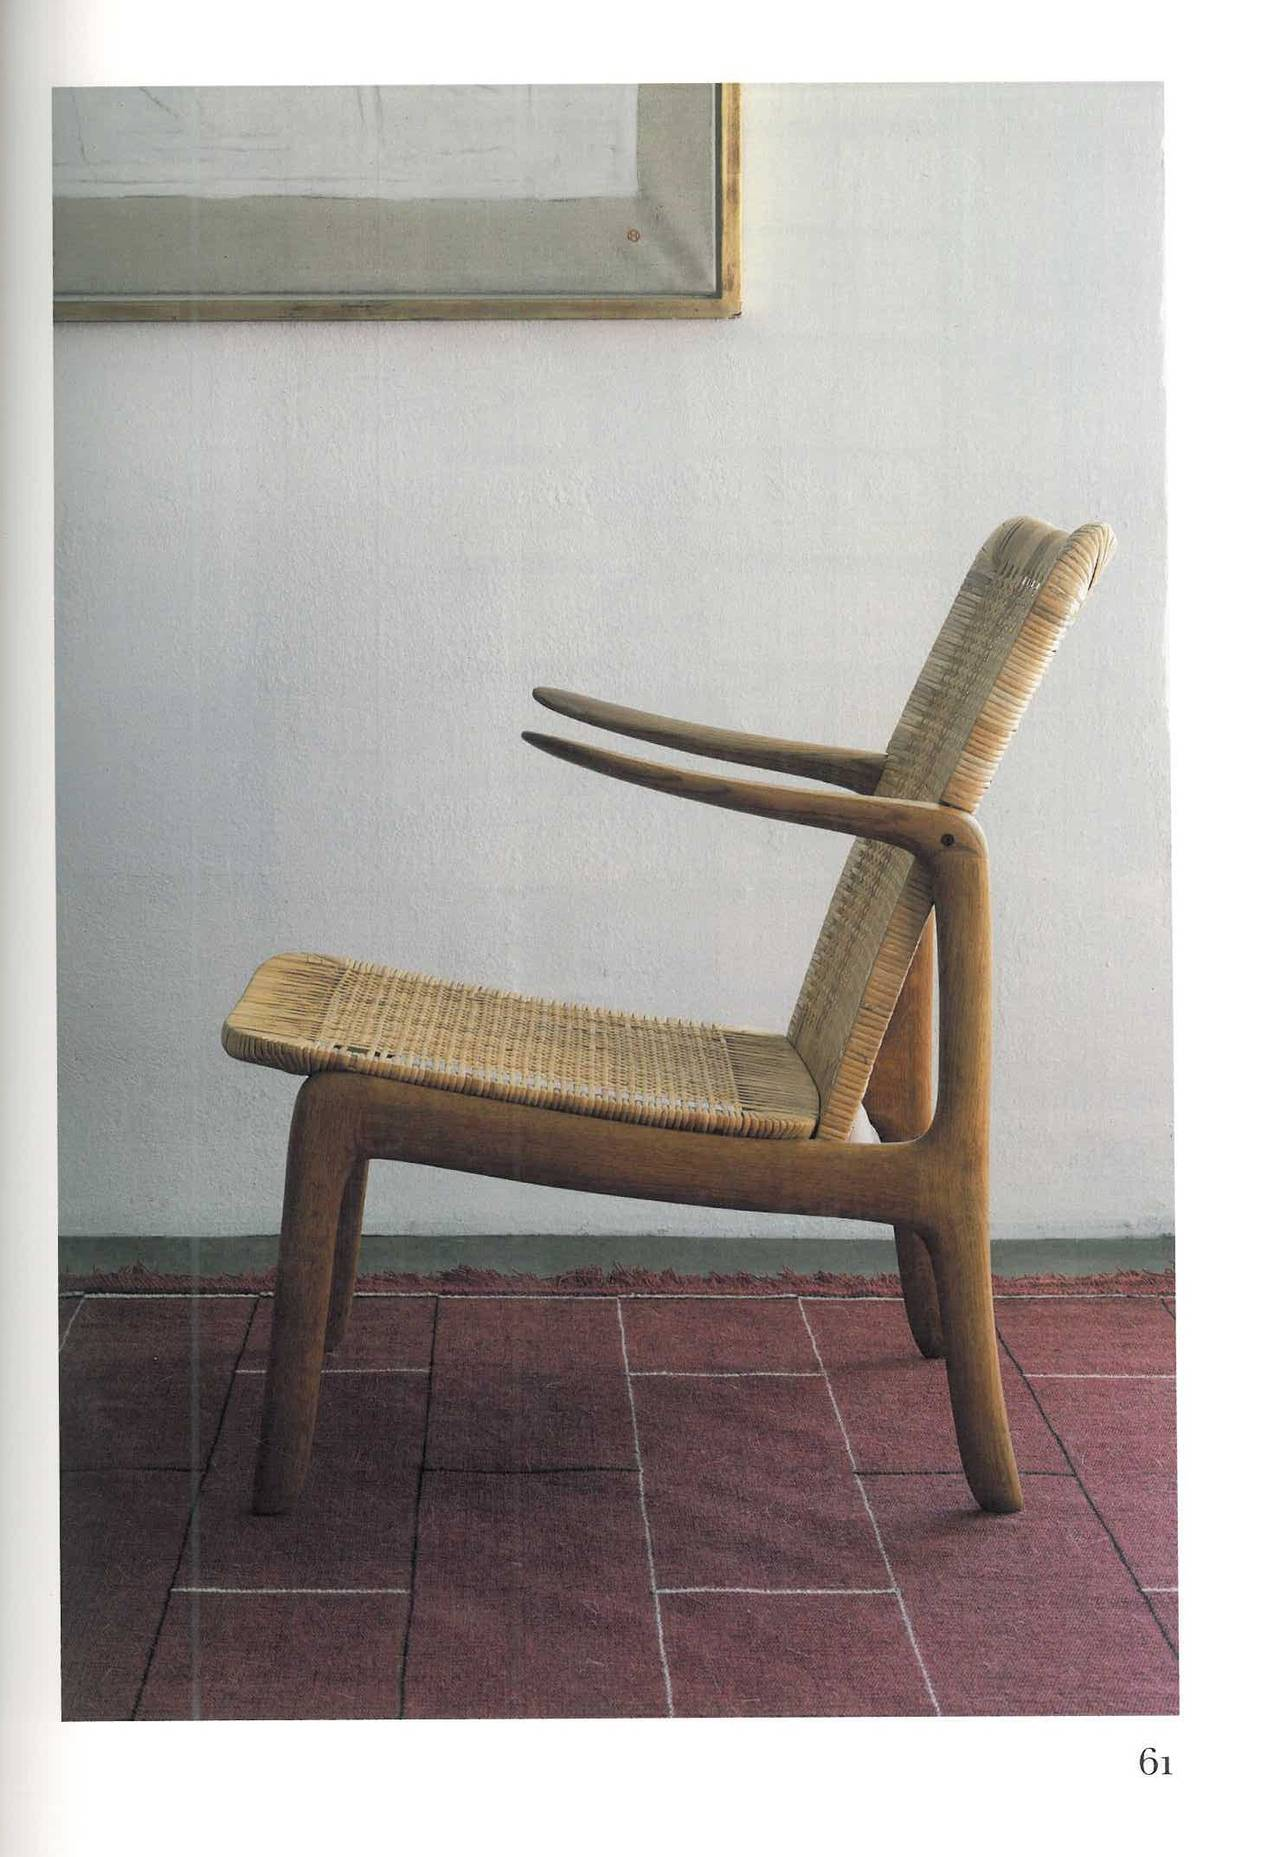 Danish Furniture Design In The 20th Century, Two Volume Book In Excellent  Condition For Sale